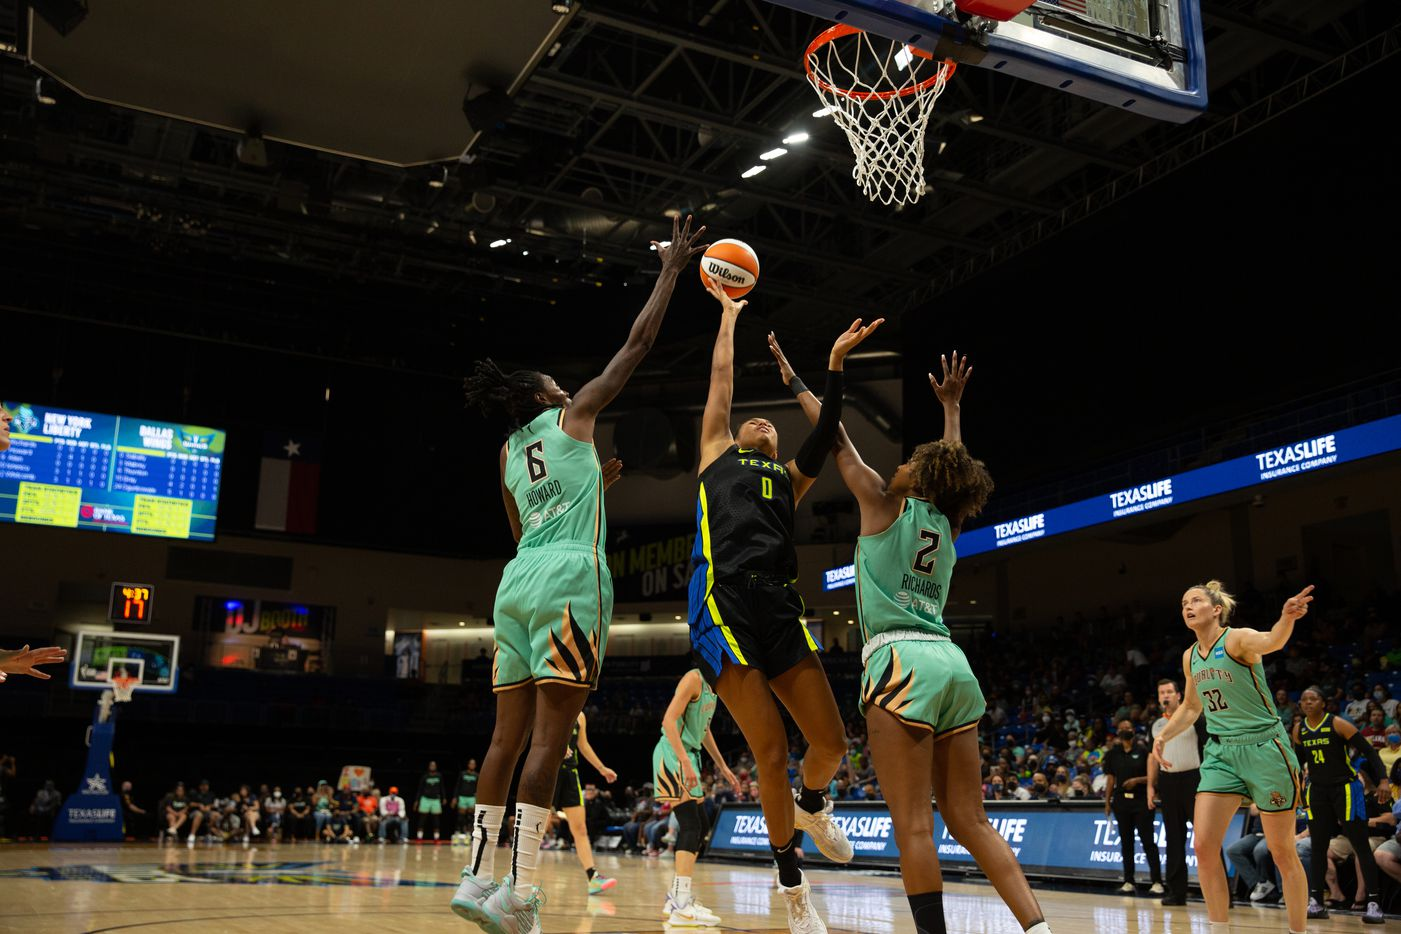 Dallas Wings forward Satou Sabally (0) drives up for a shot during their game against New York Liberty at College Park Center in Arlington, TX on September 11, 2021.  (Shelby Tauber/Special Contributor)